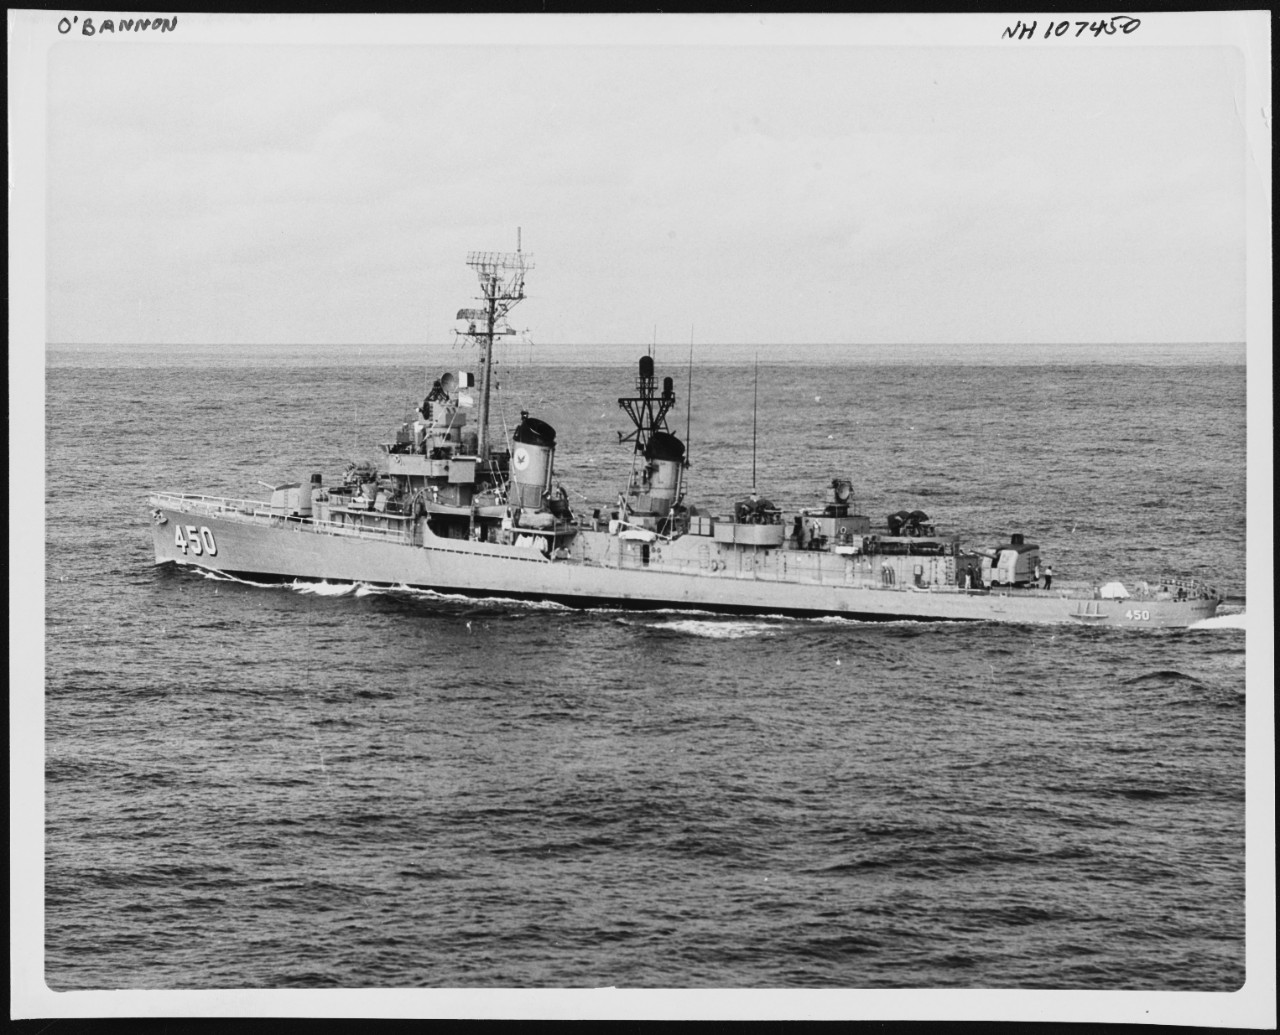 Photo #: NH 107450  USS O'Bannon